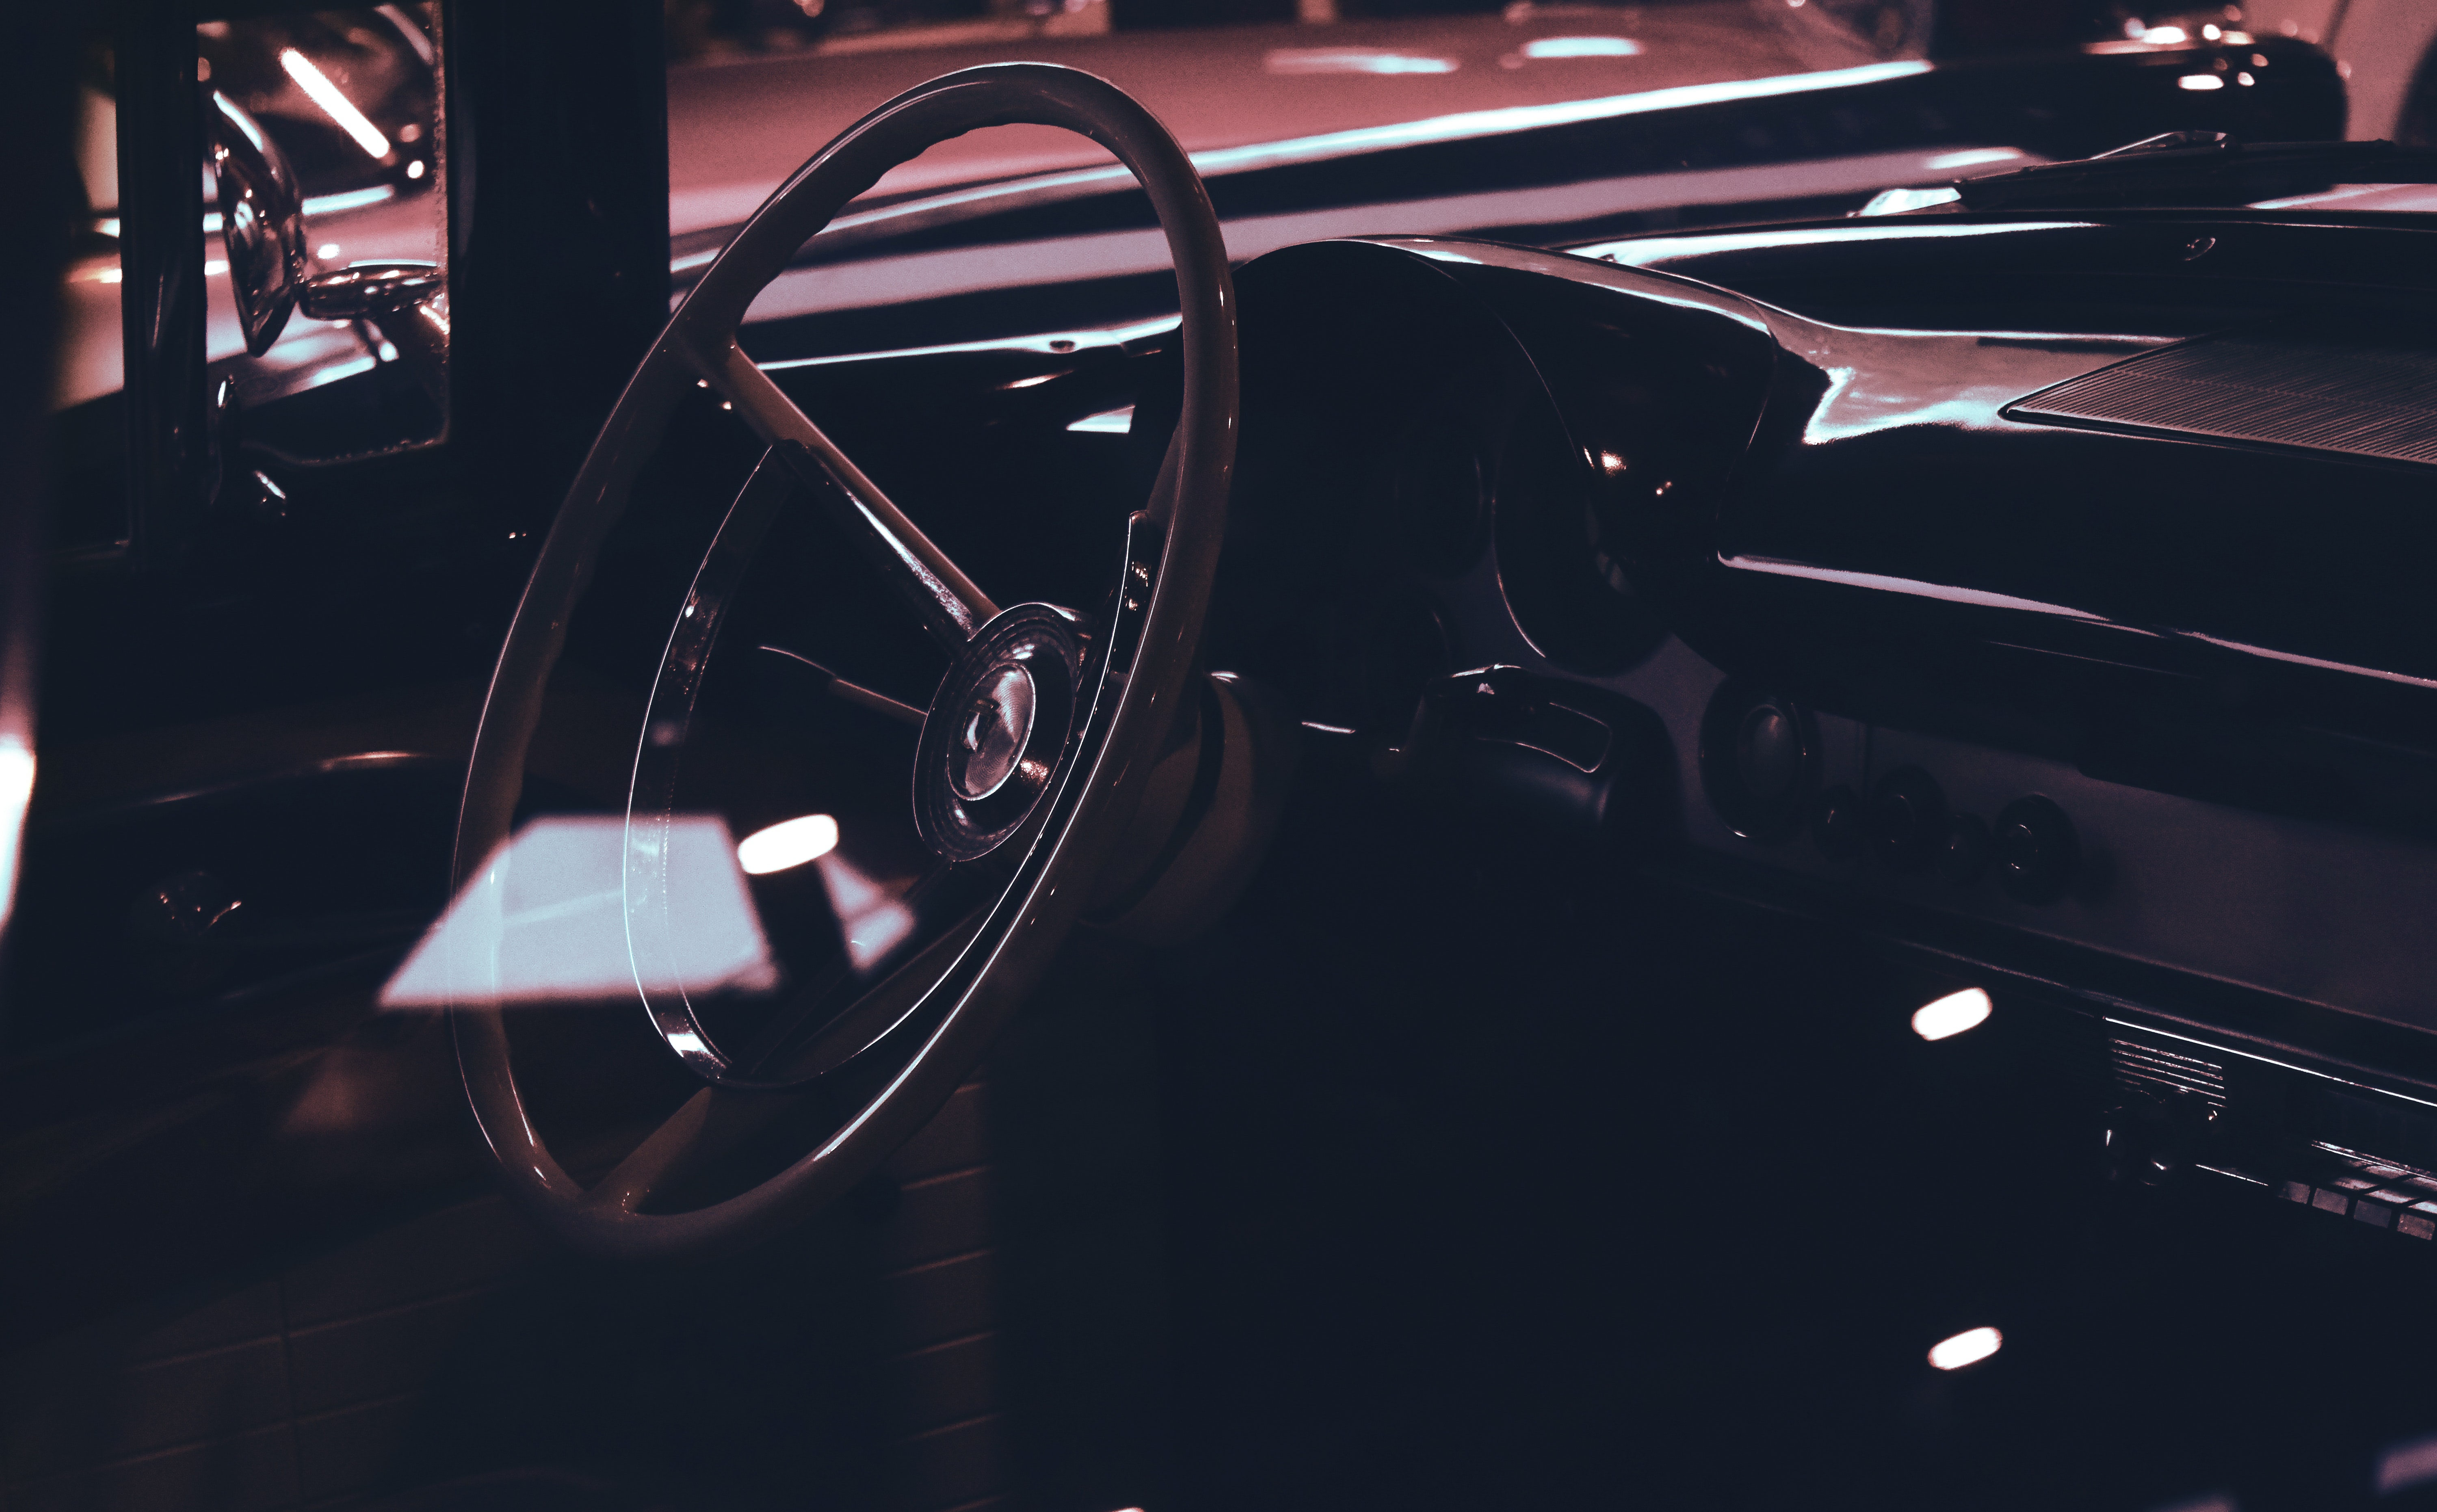 Classic car interior showing wooden steering wheel photo